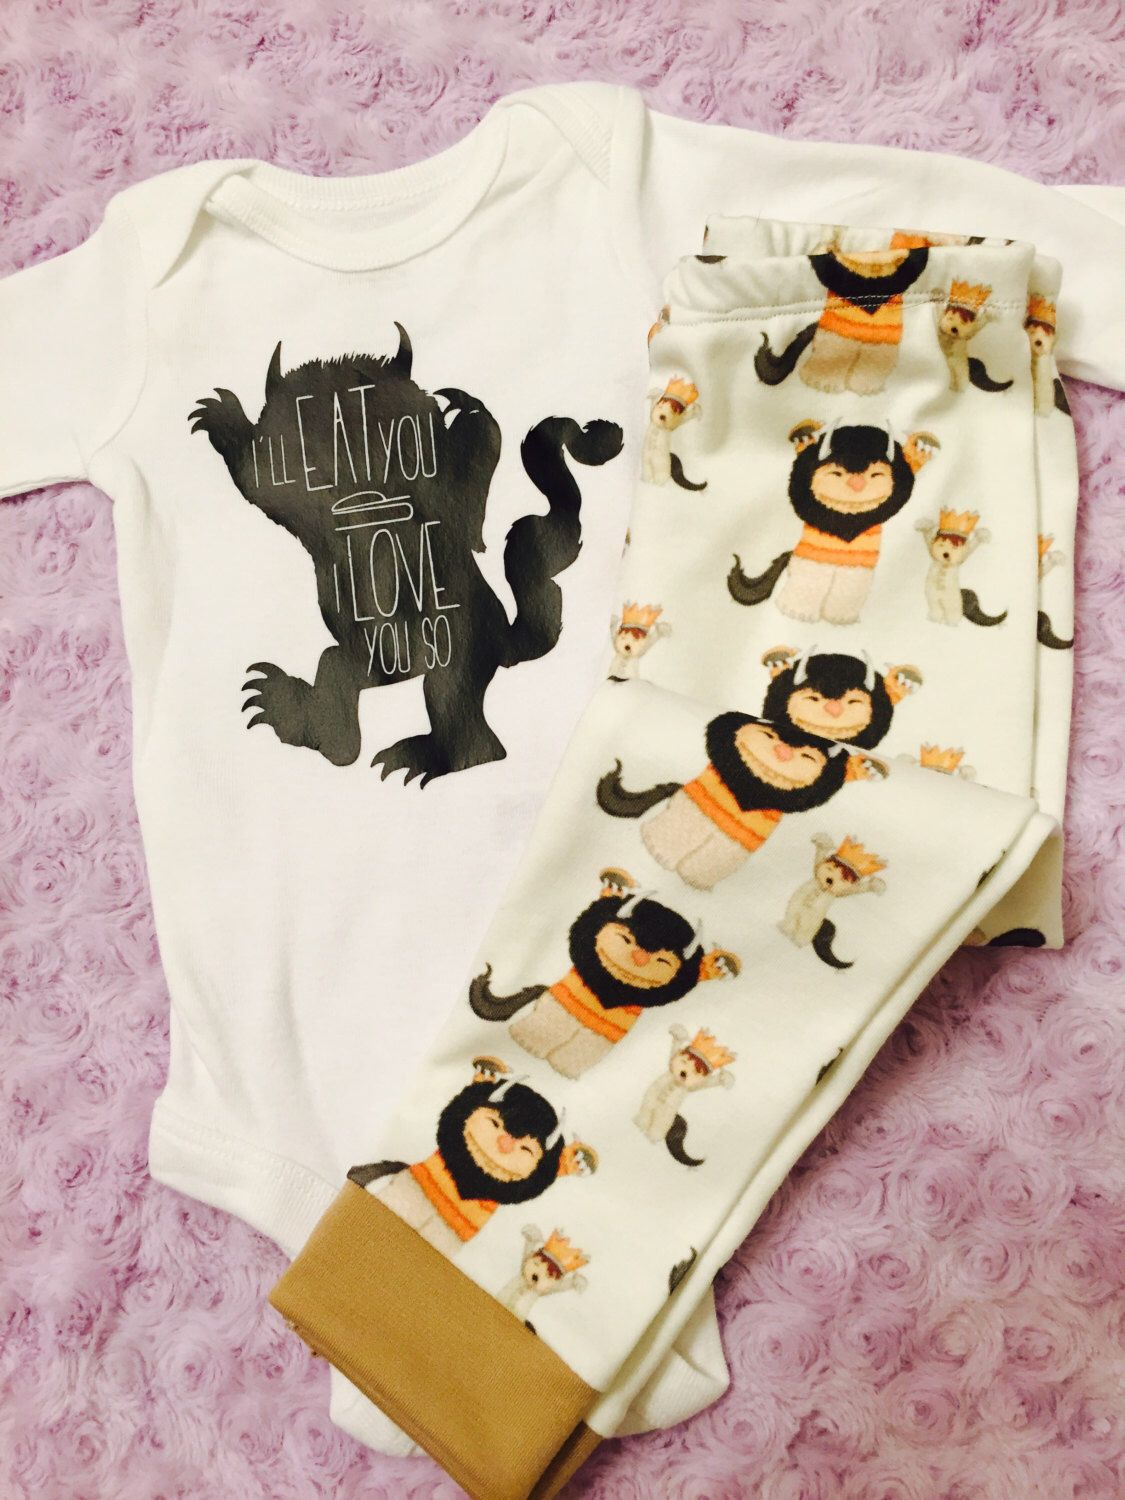 A Super Sweet Movie Based Baby Shower Gift Where The Wild Things Are